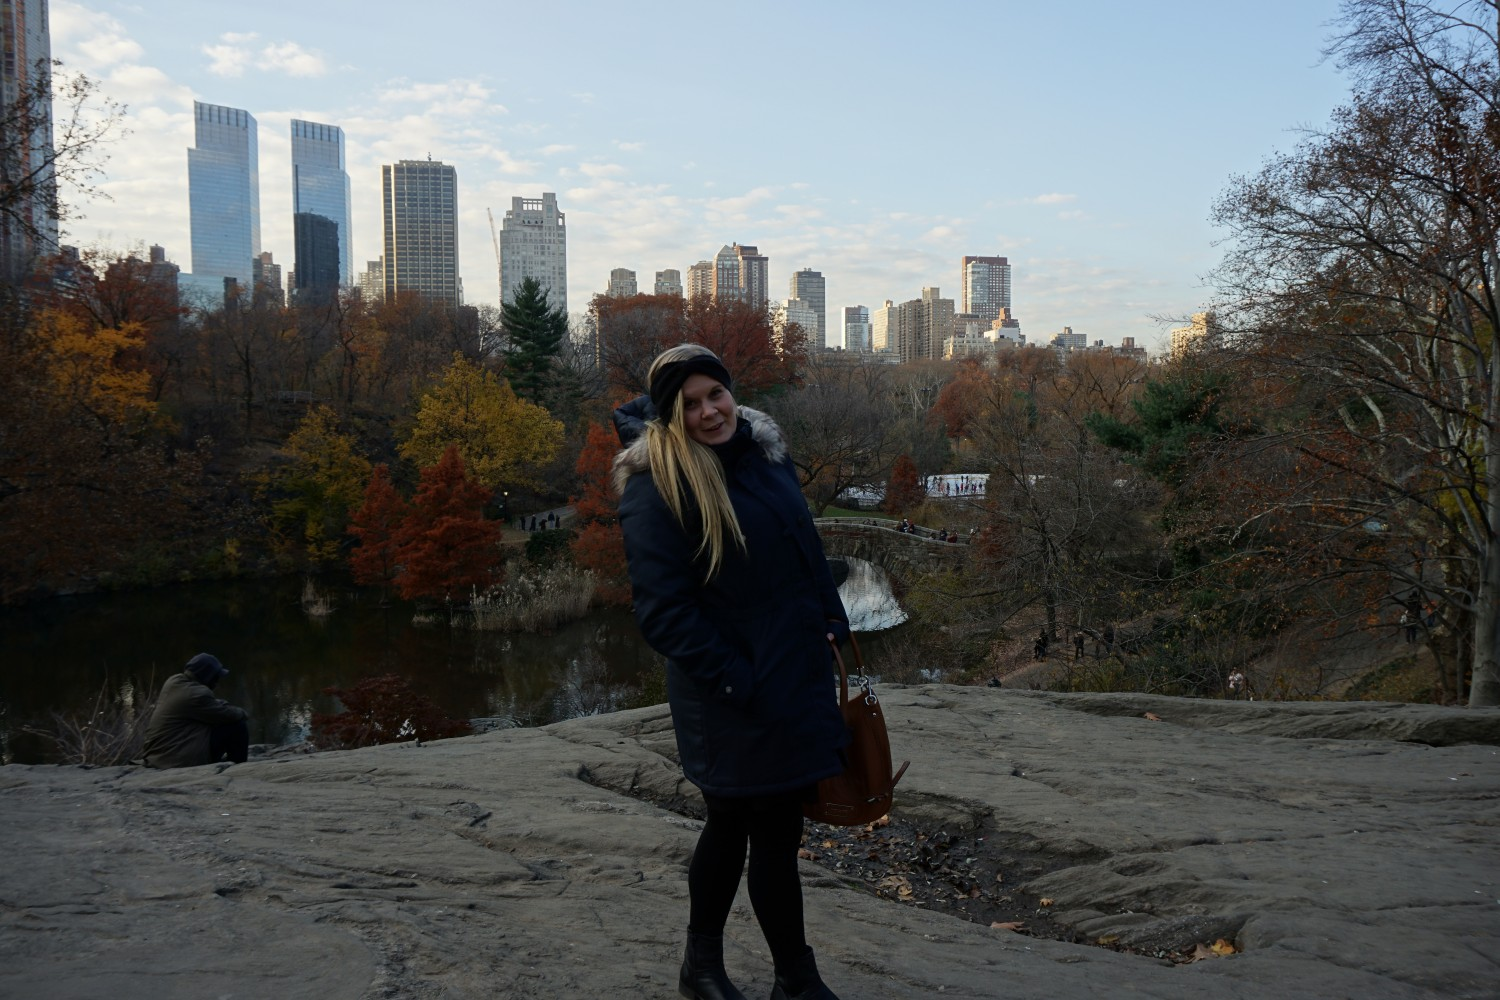 Central Park - Last day of autumn